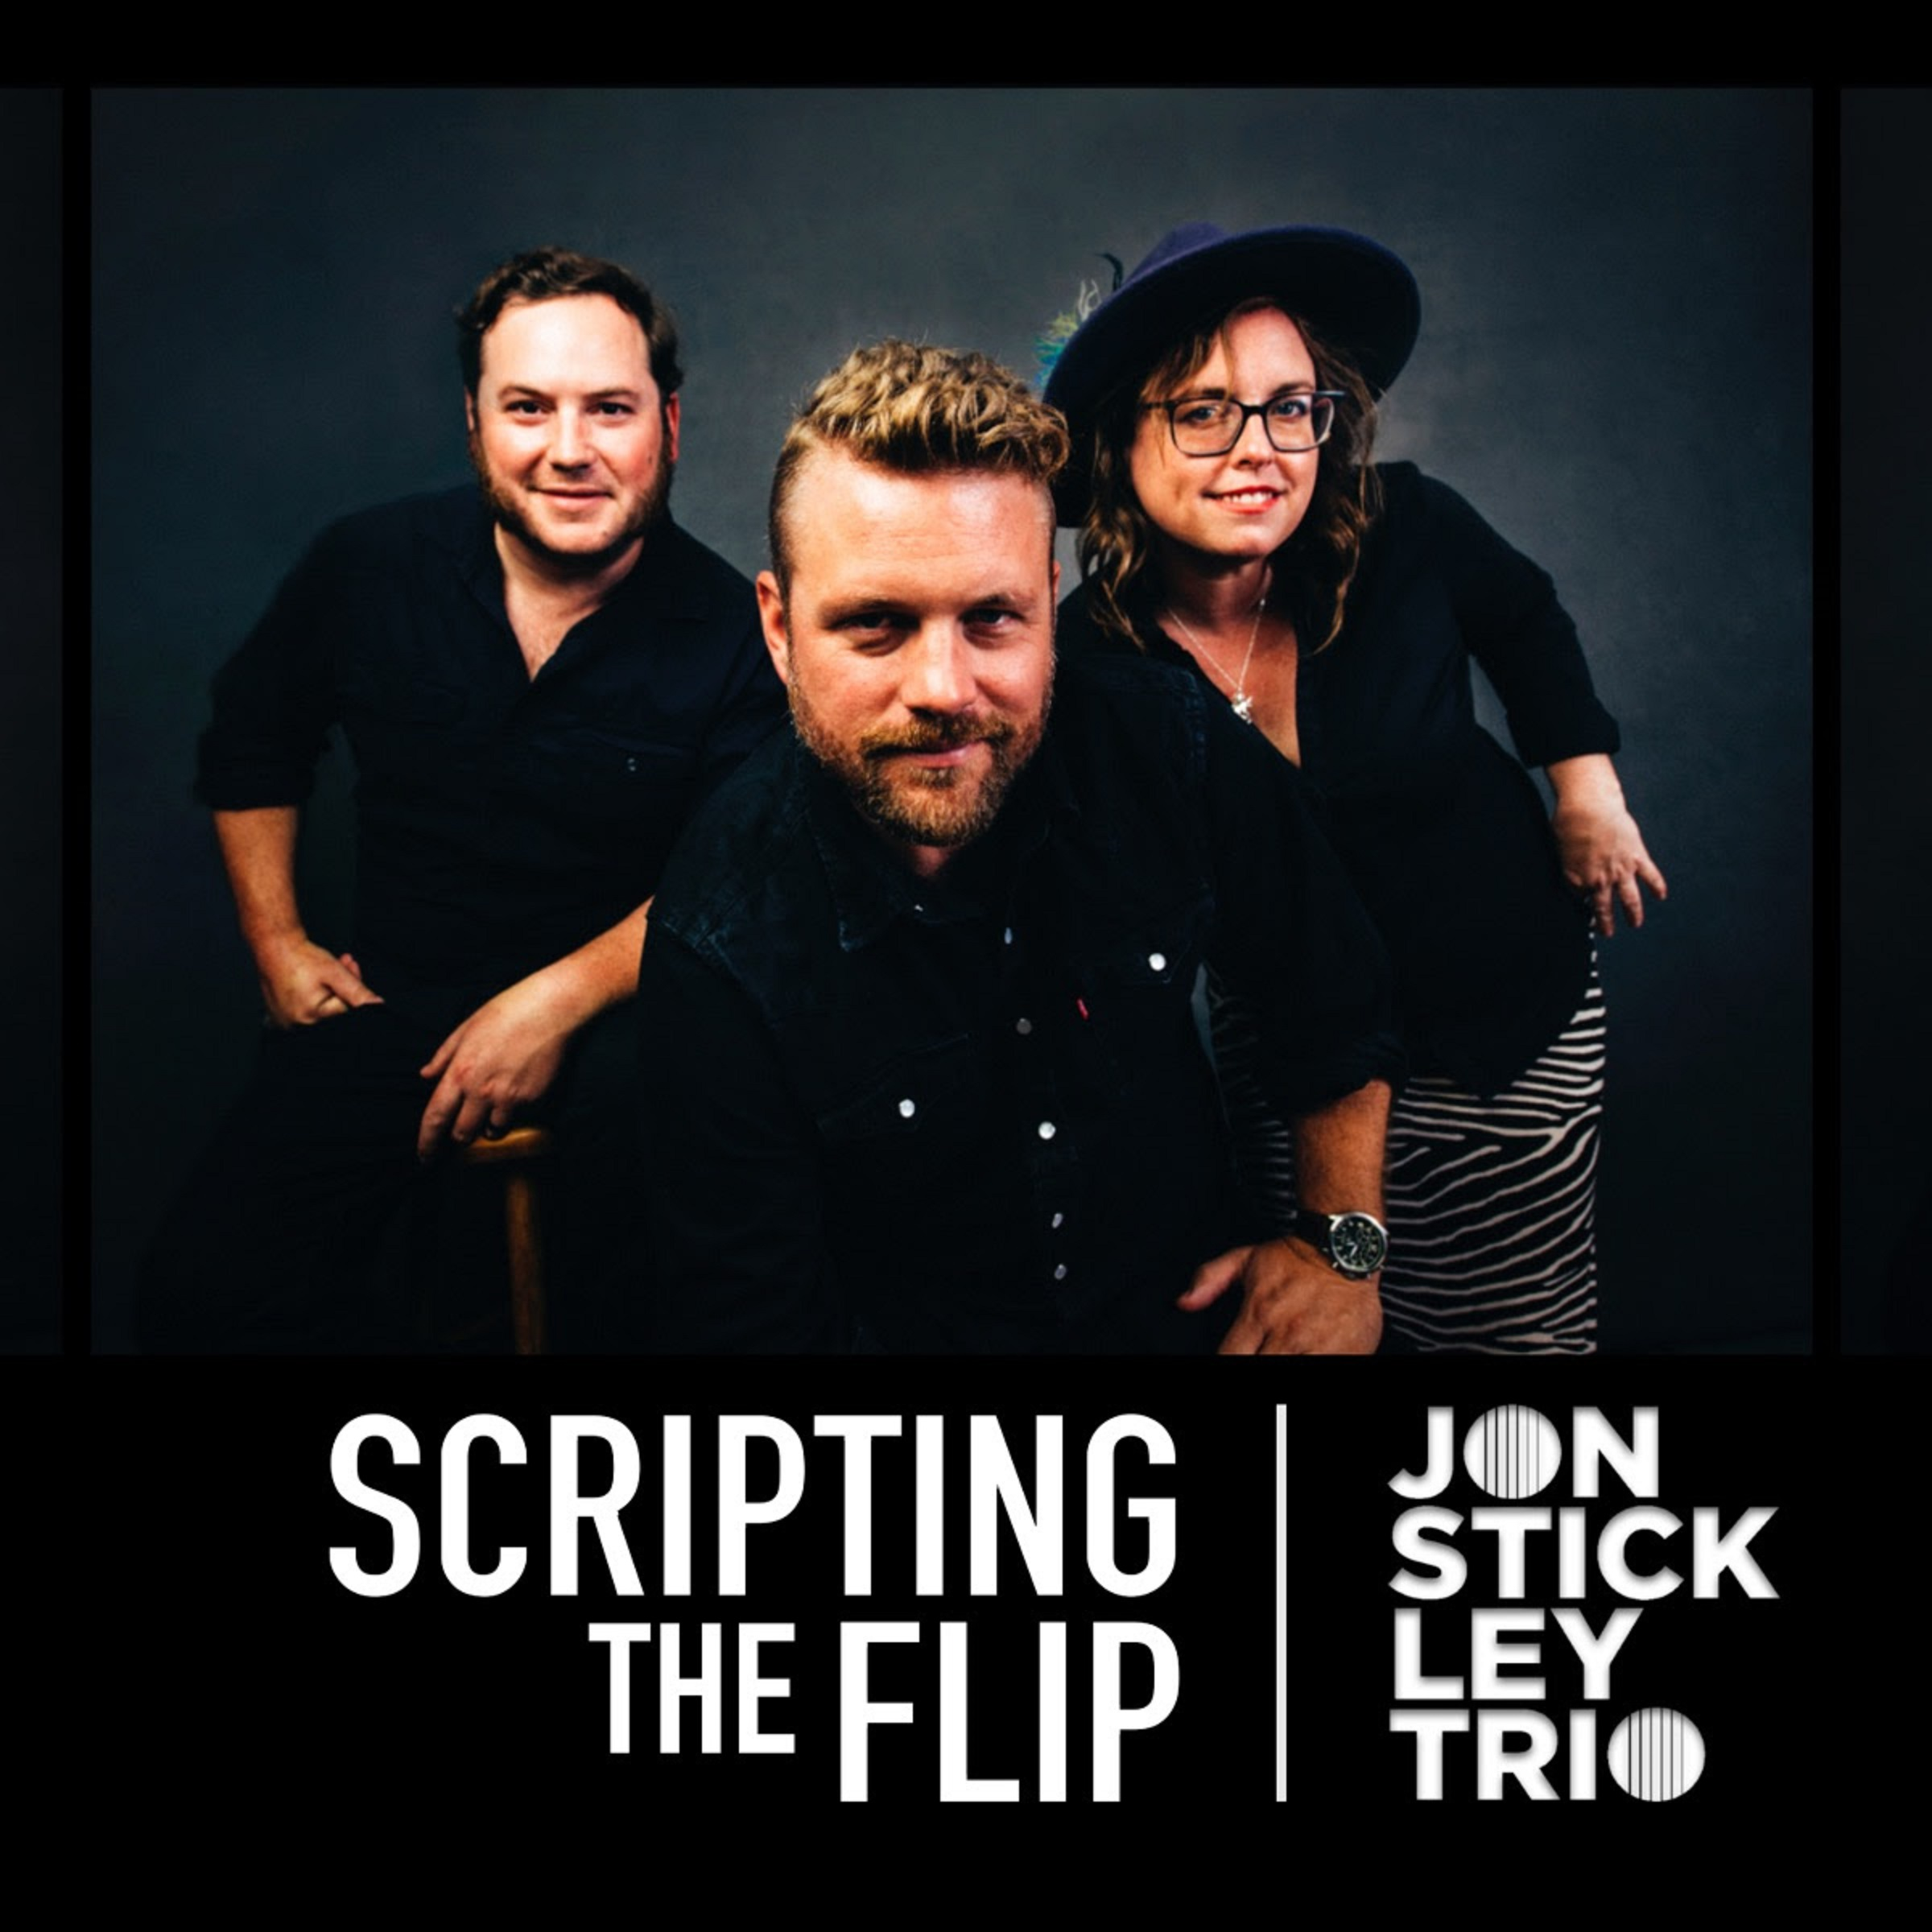 Jon Stickley Trio to release innovative album, Scripting The Flip